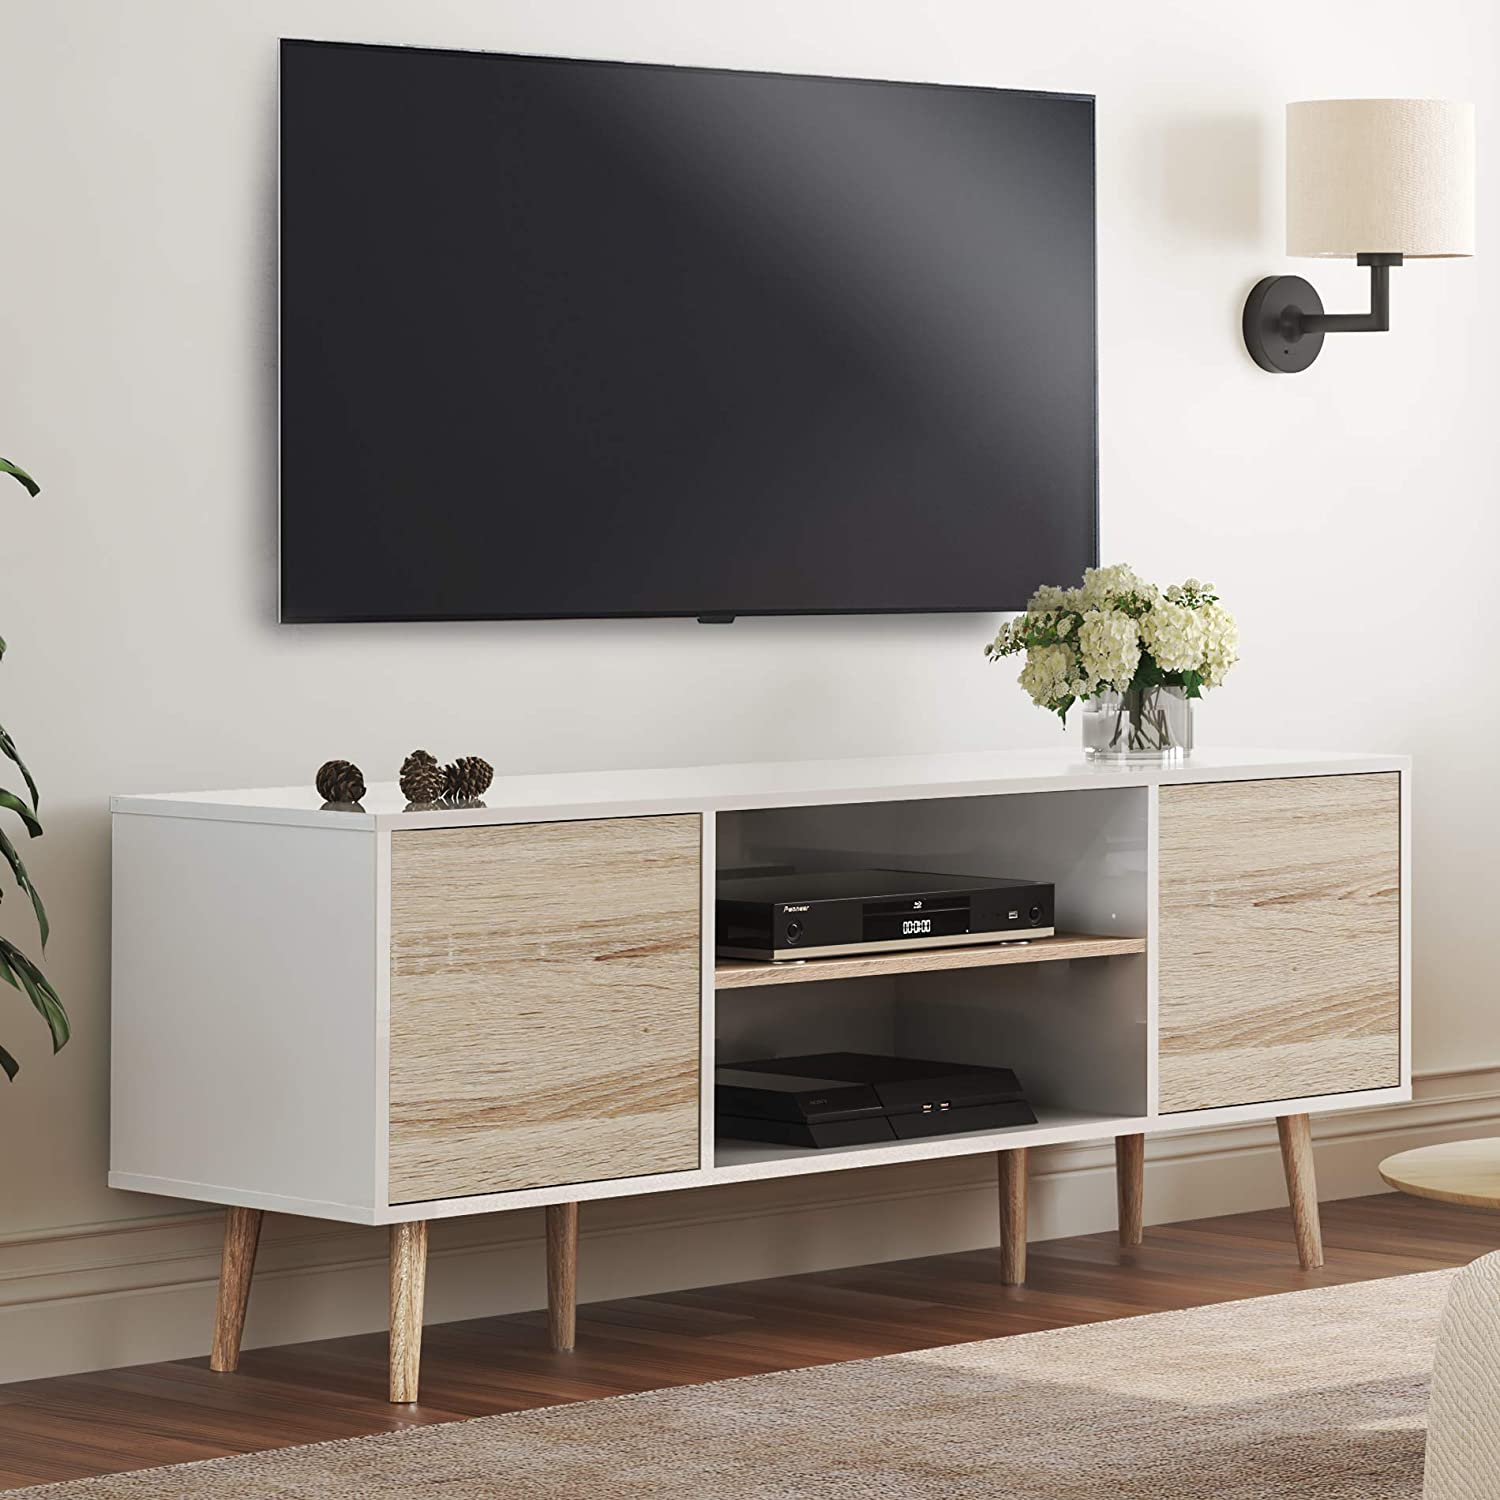 WAMPAT Mid-Century Modern TV Stands for TVs up to 60 '' Flat Screen, Wood Media Console Table with Doors Home Entertainment Center for Living Room, White/Oak